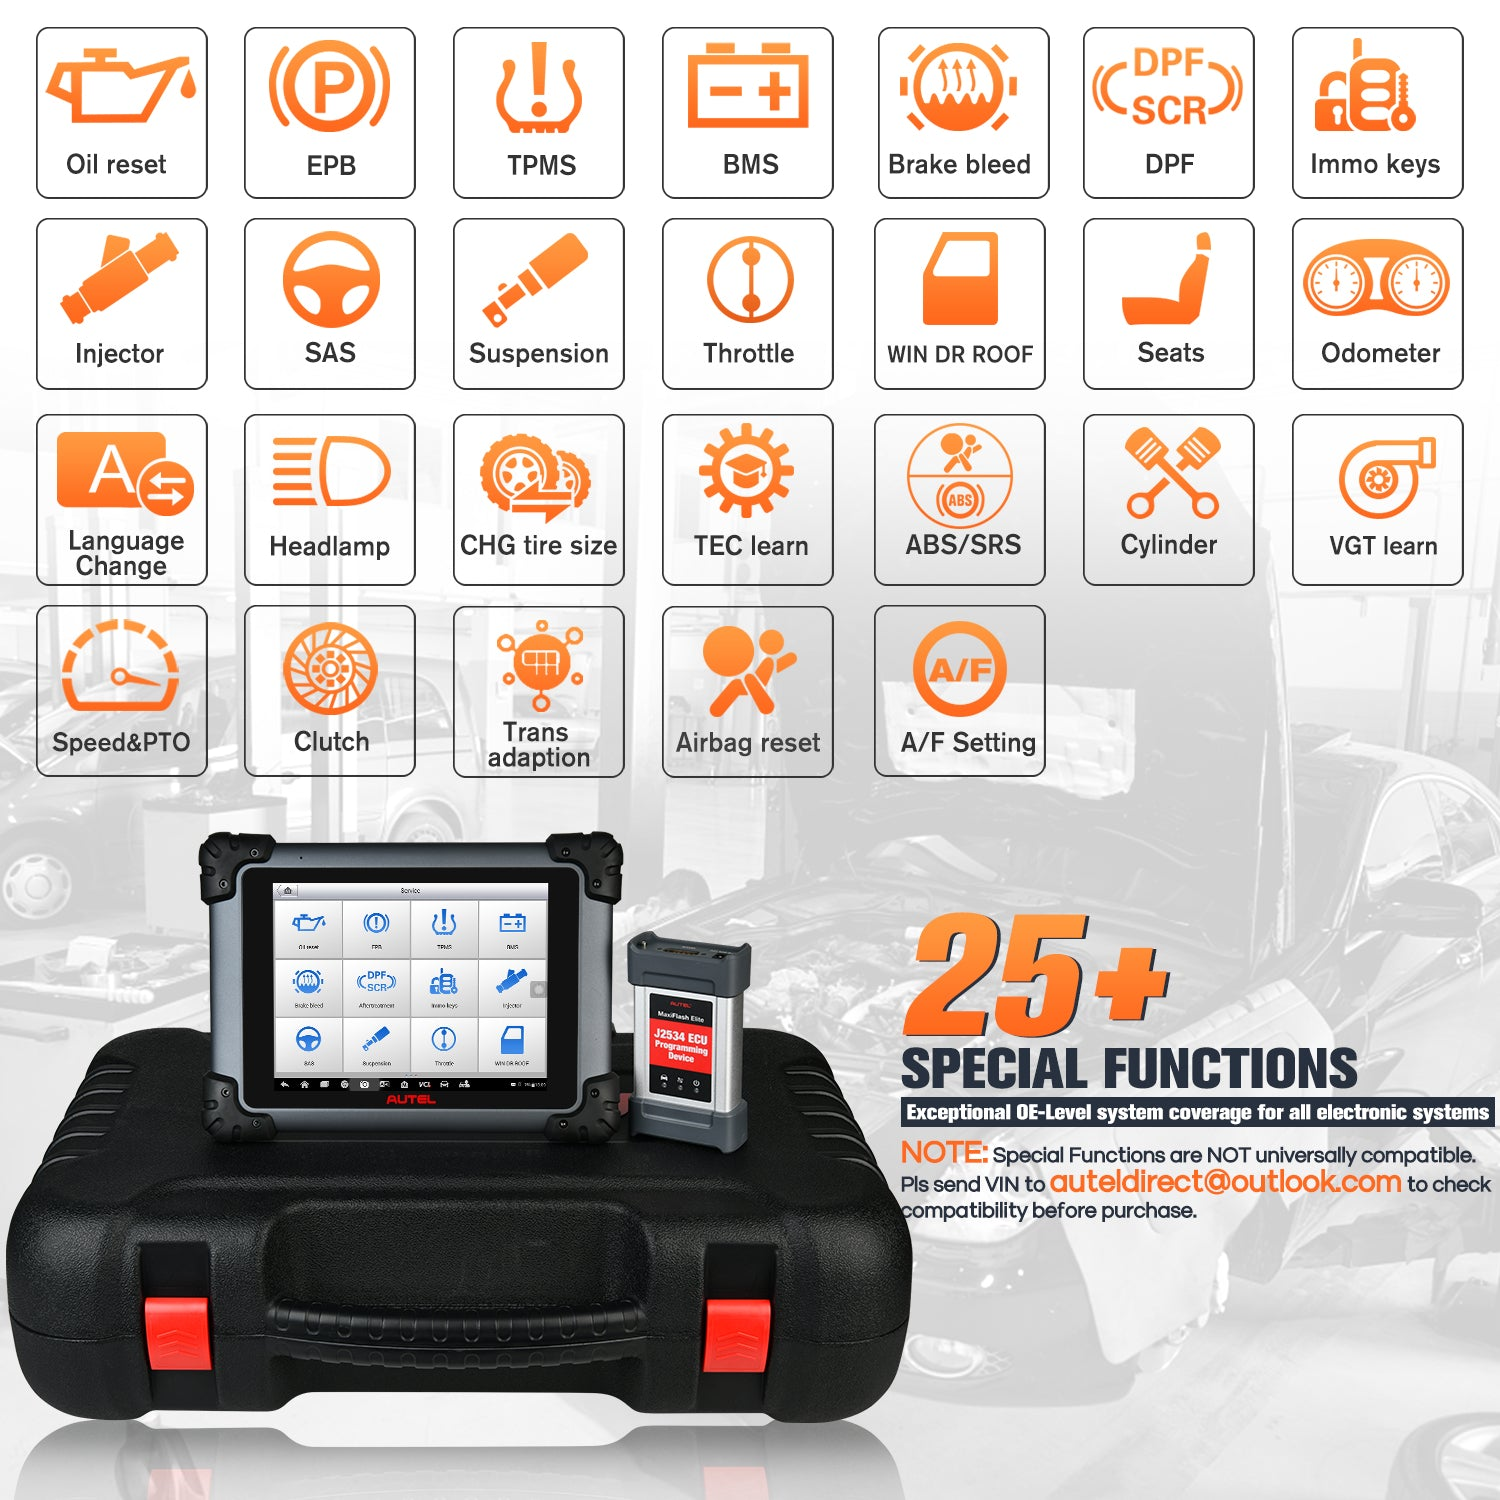 Autel Maxisys MS908S Pro Professional  OBD2 Diagnostic Tool Supports More Than 25 Special Functions